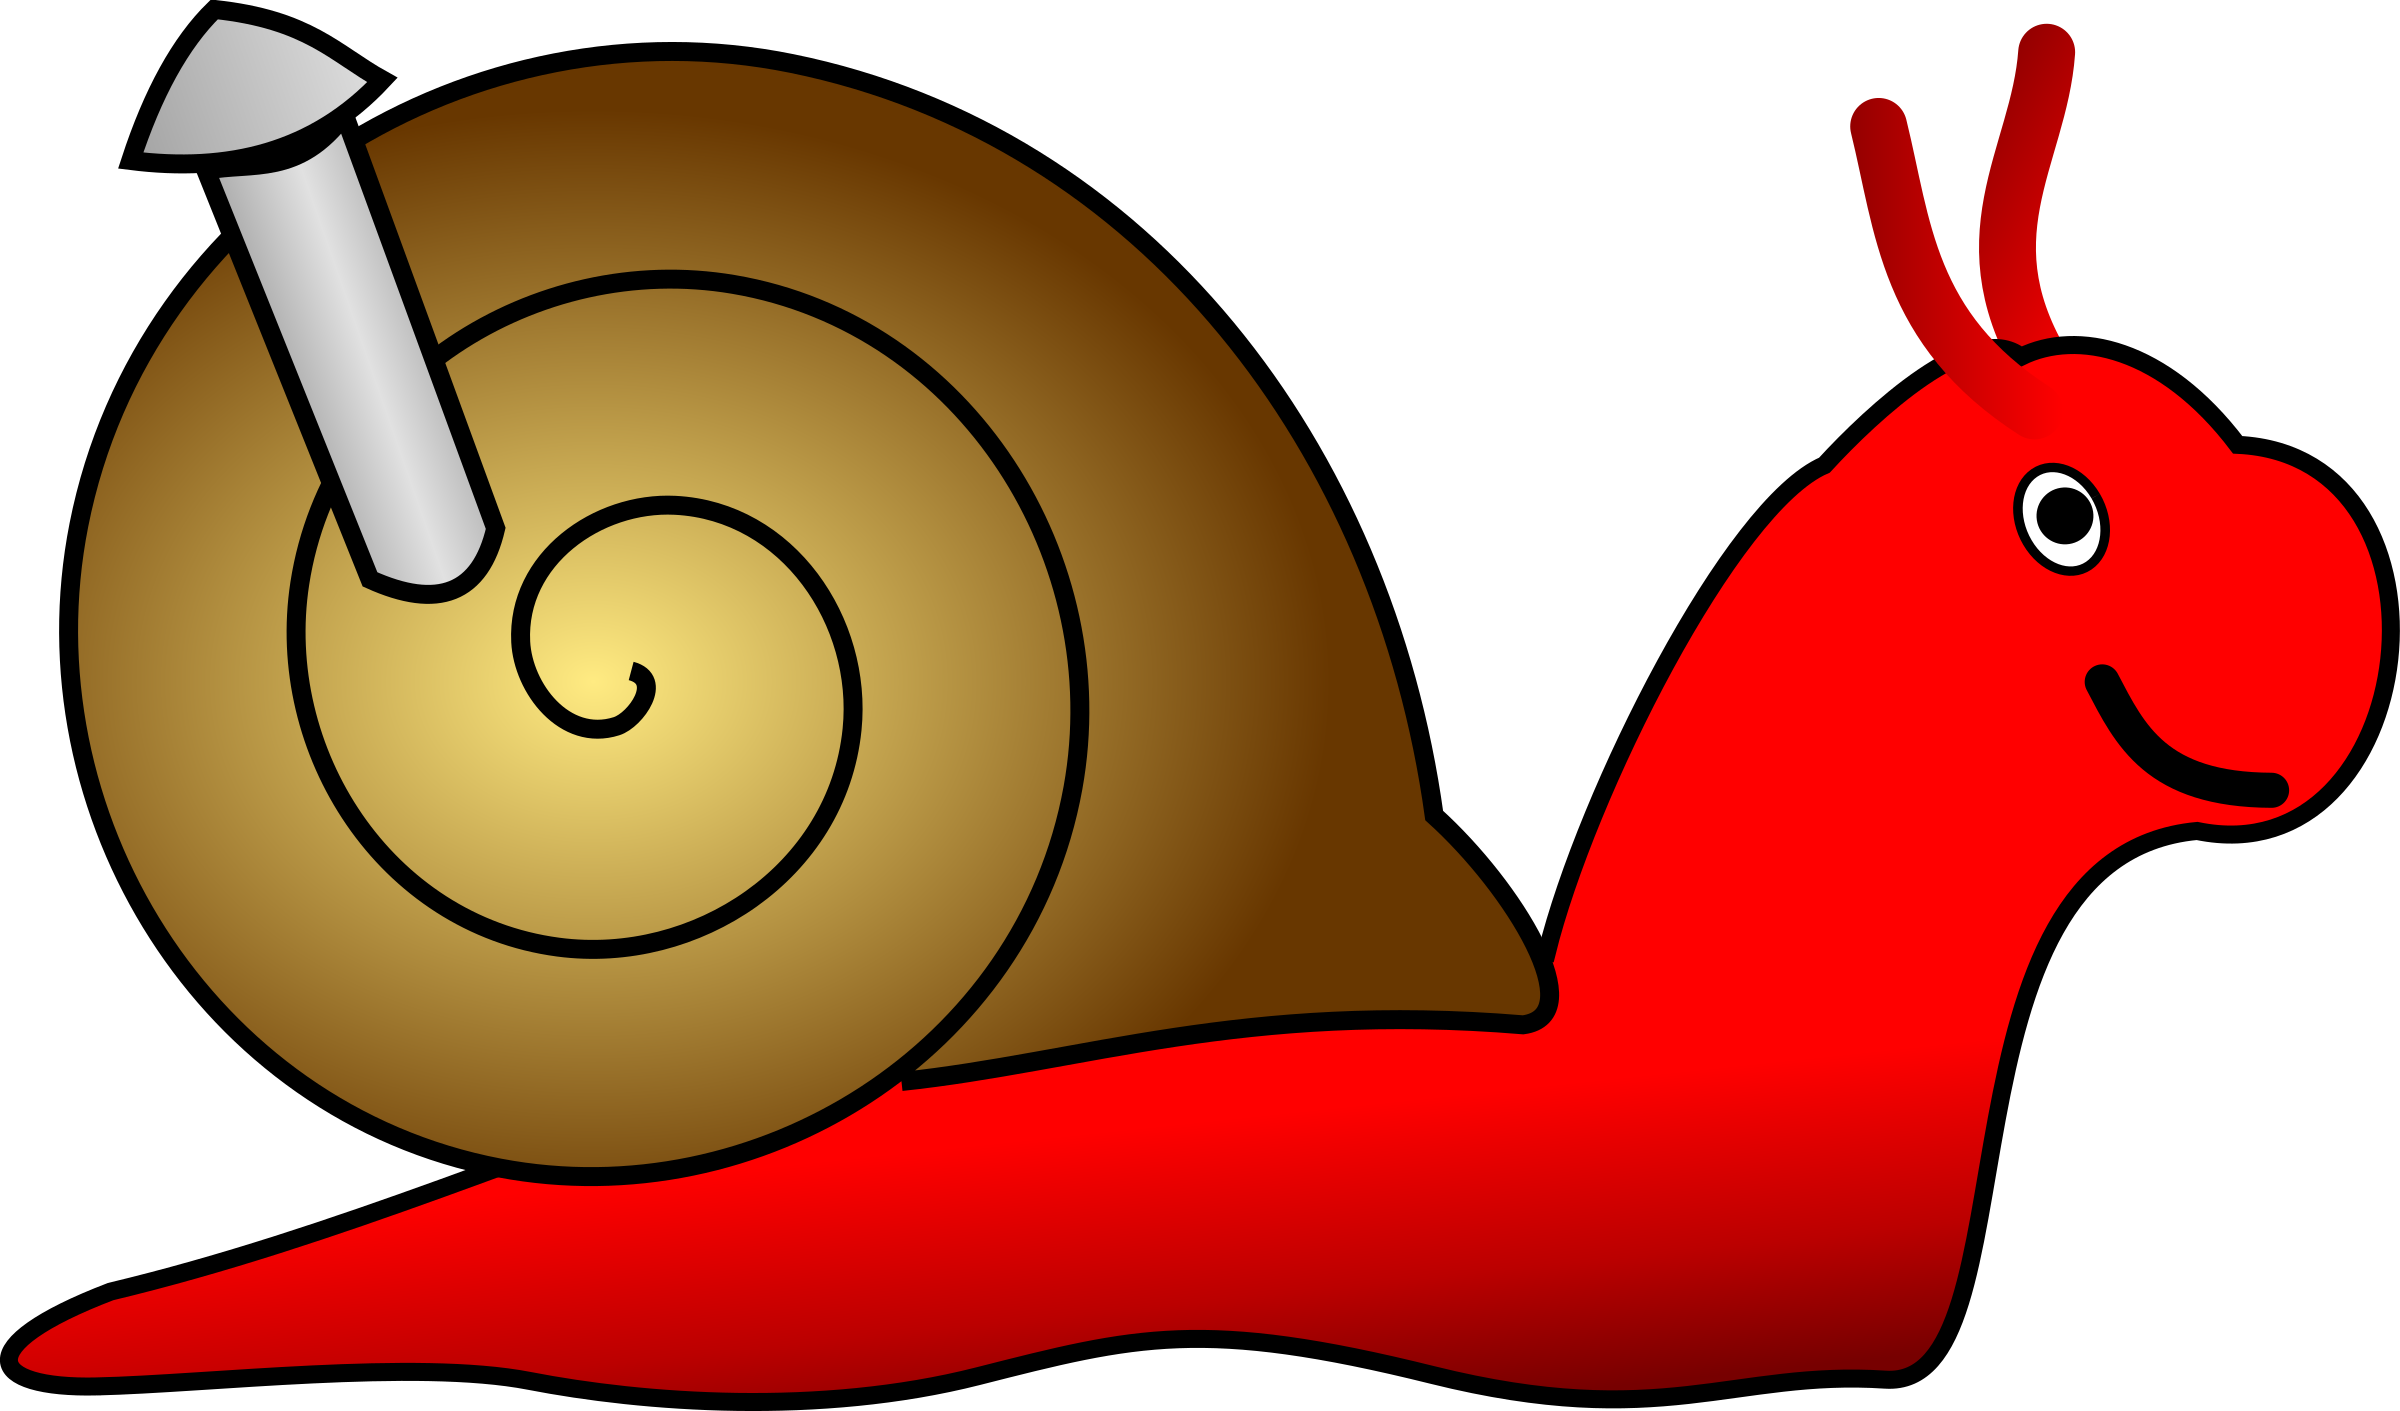 Snail by frankes